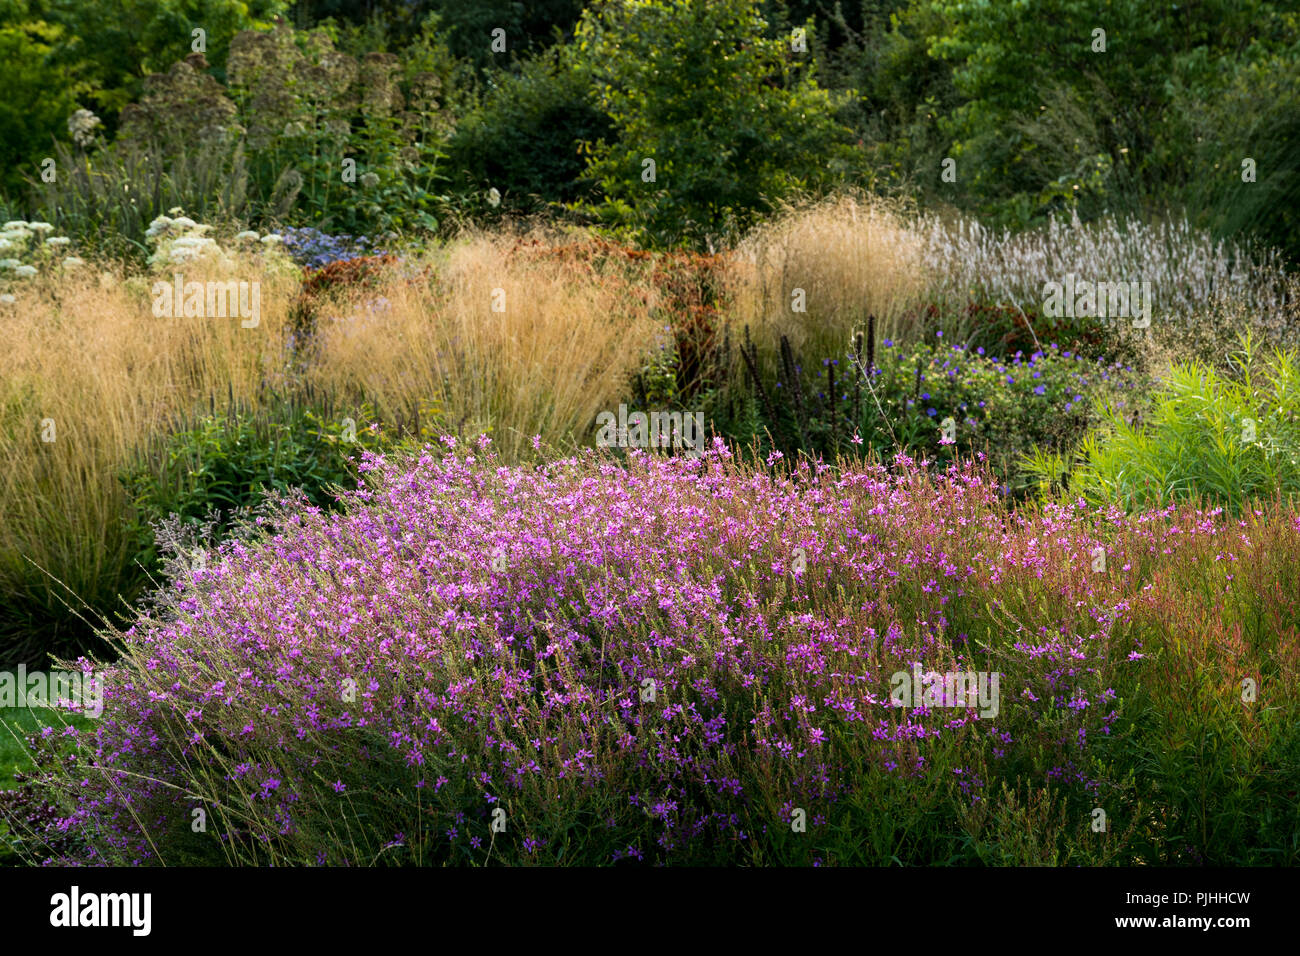 Perennials And Ornamental Grasses In A Large Garden Stock Photo